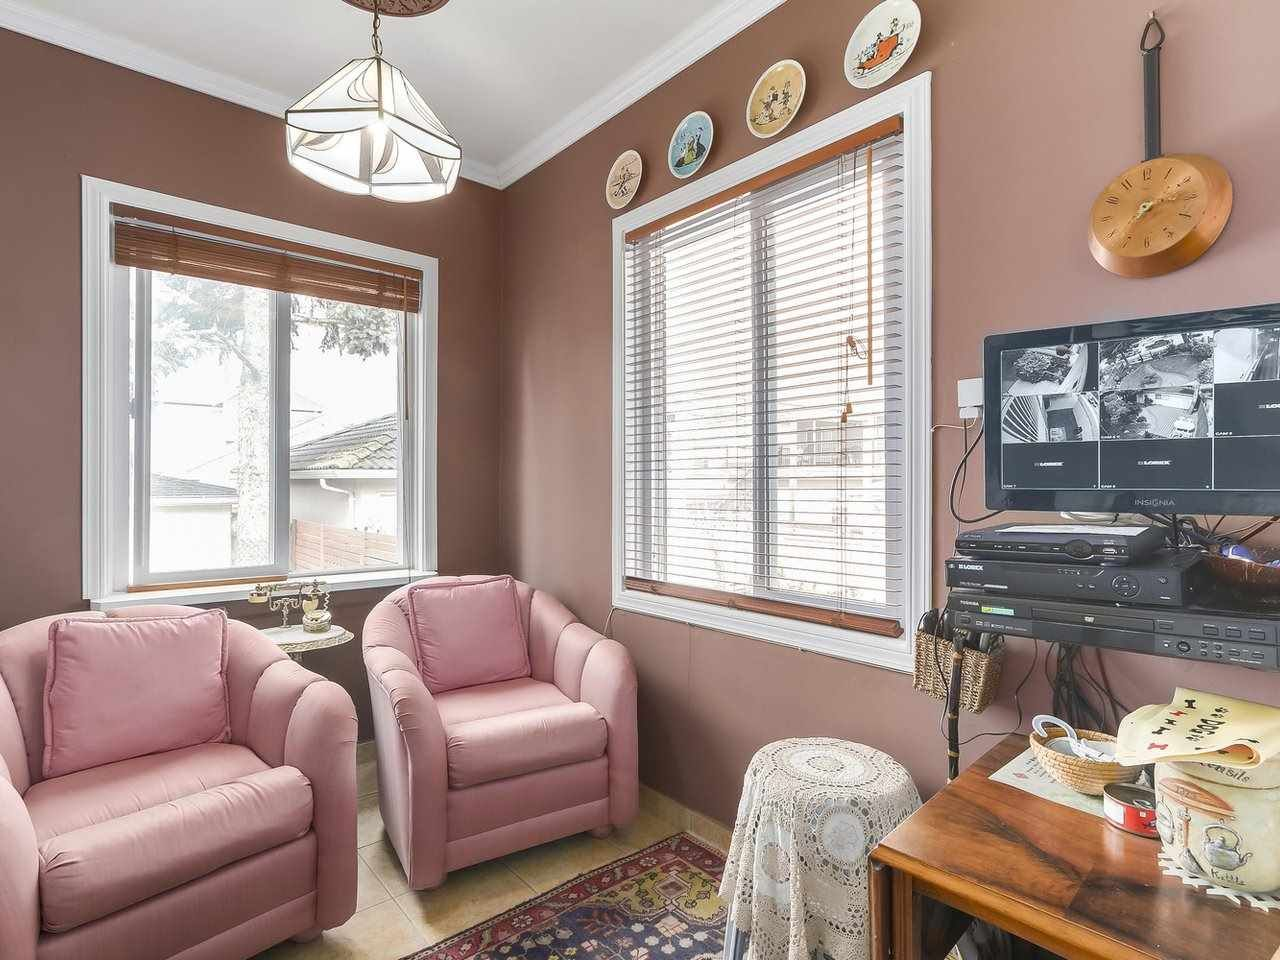 Photo 9: Photos: 165 E 55TH AVENUE in Vancouver: South Vancouver House for sale (Vancouver East)  : MLS®# R2297472